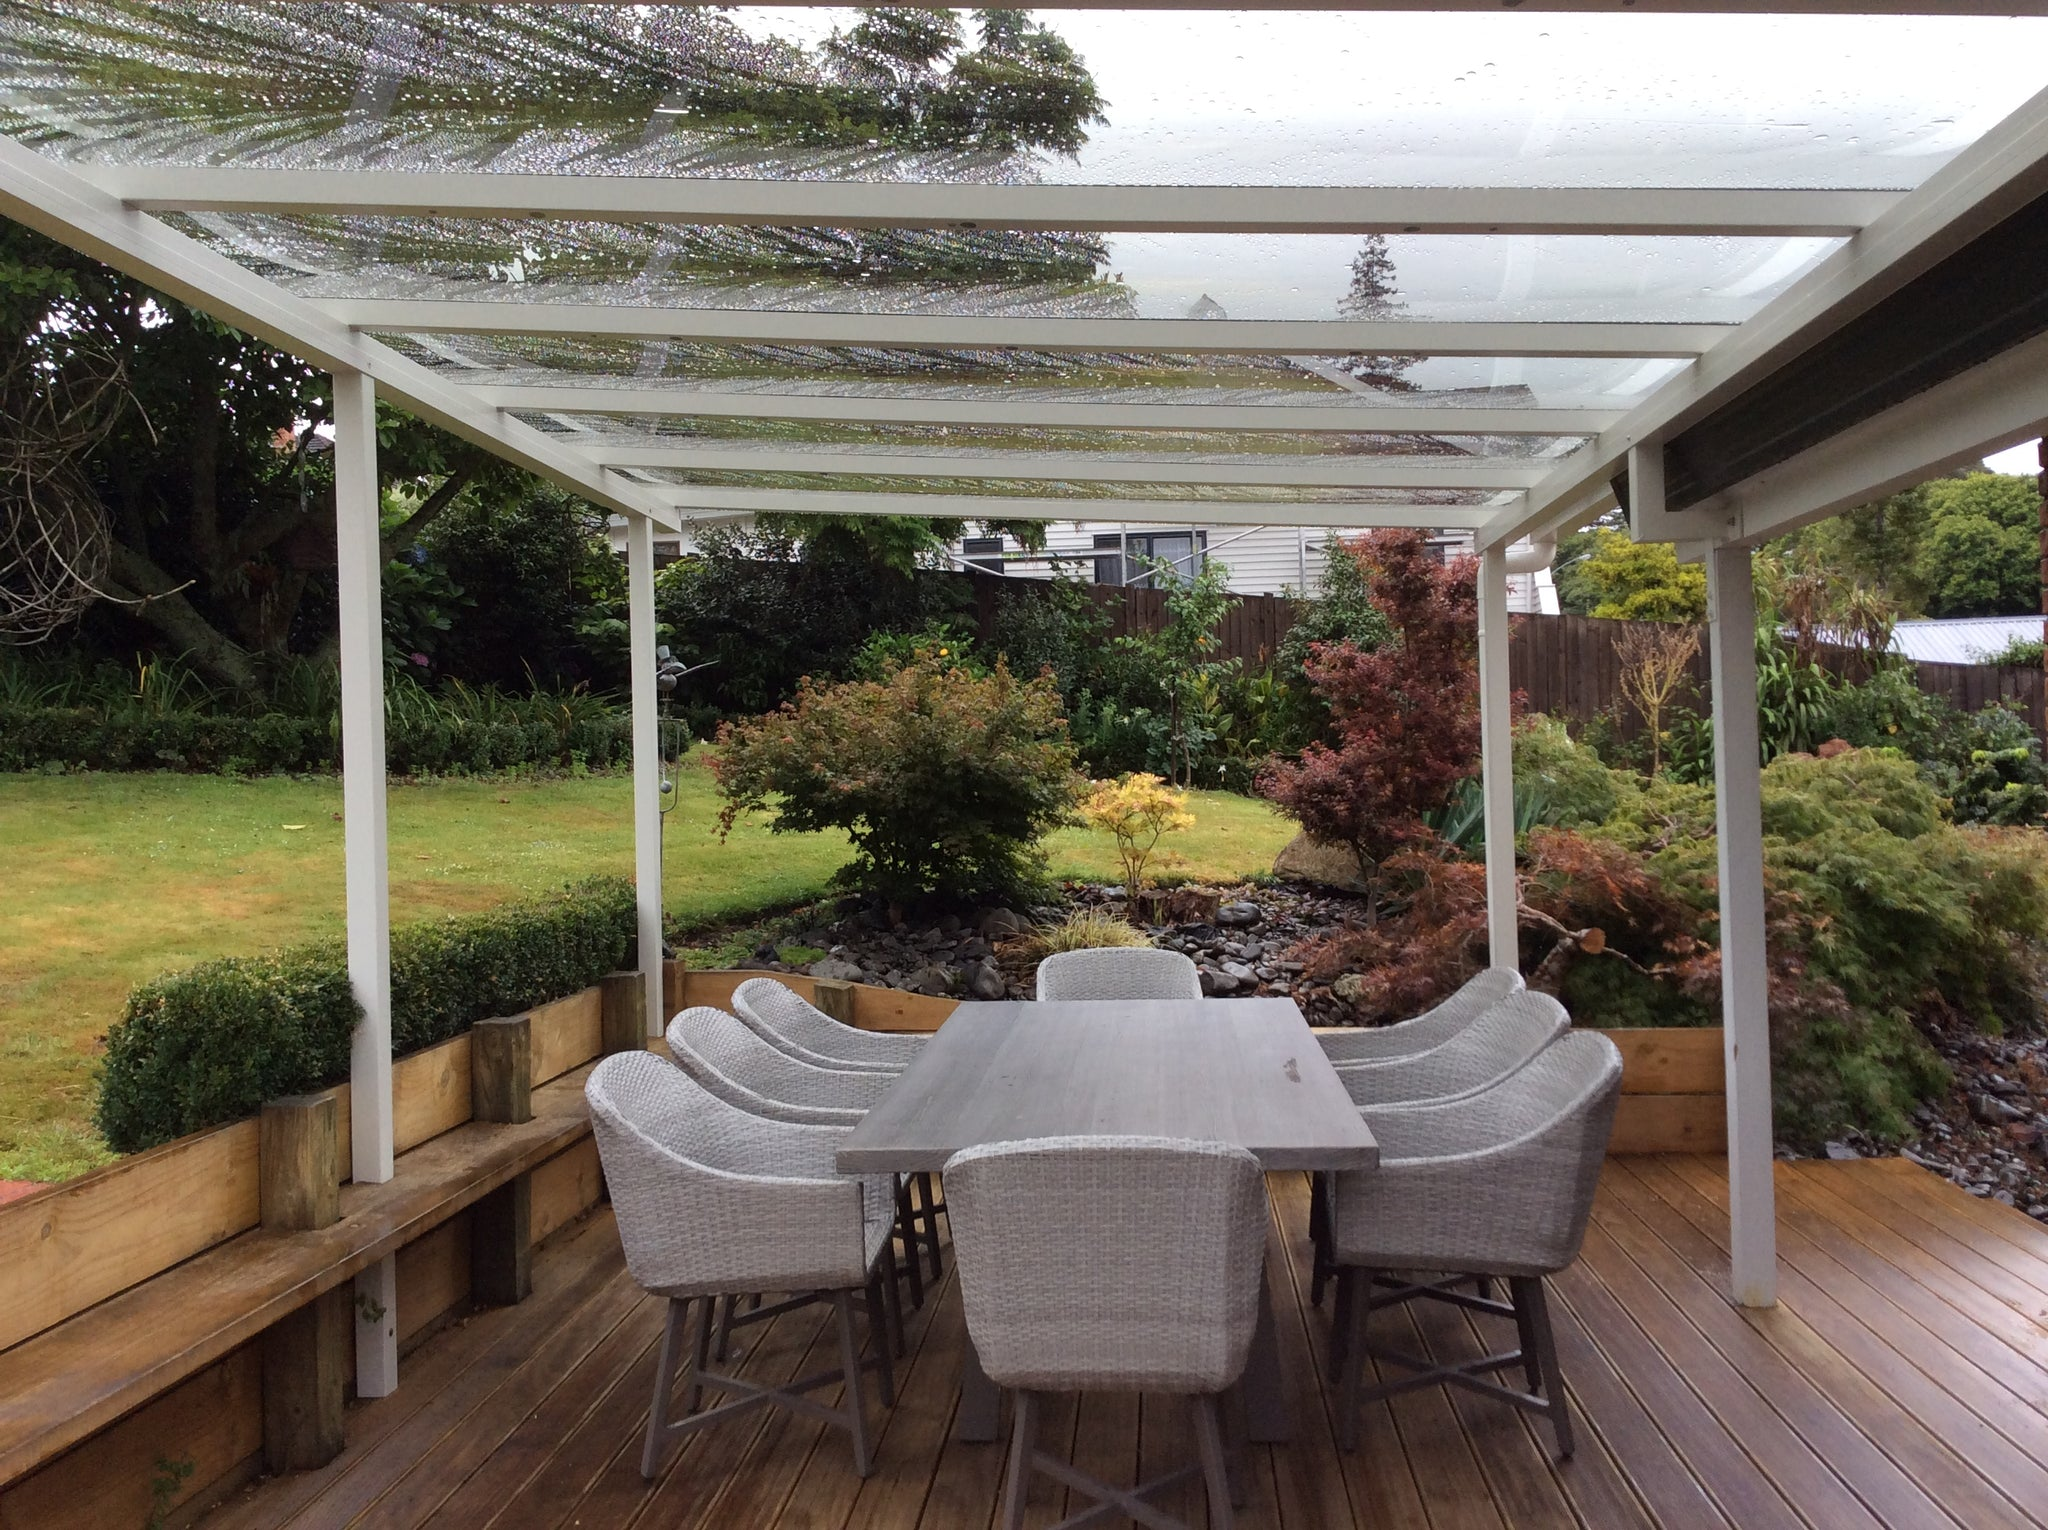 Self Supporting Pergola Wall Mounted Aluminum With Mobile